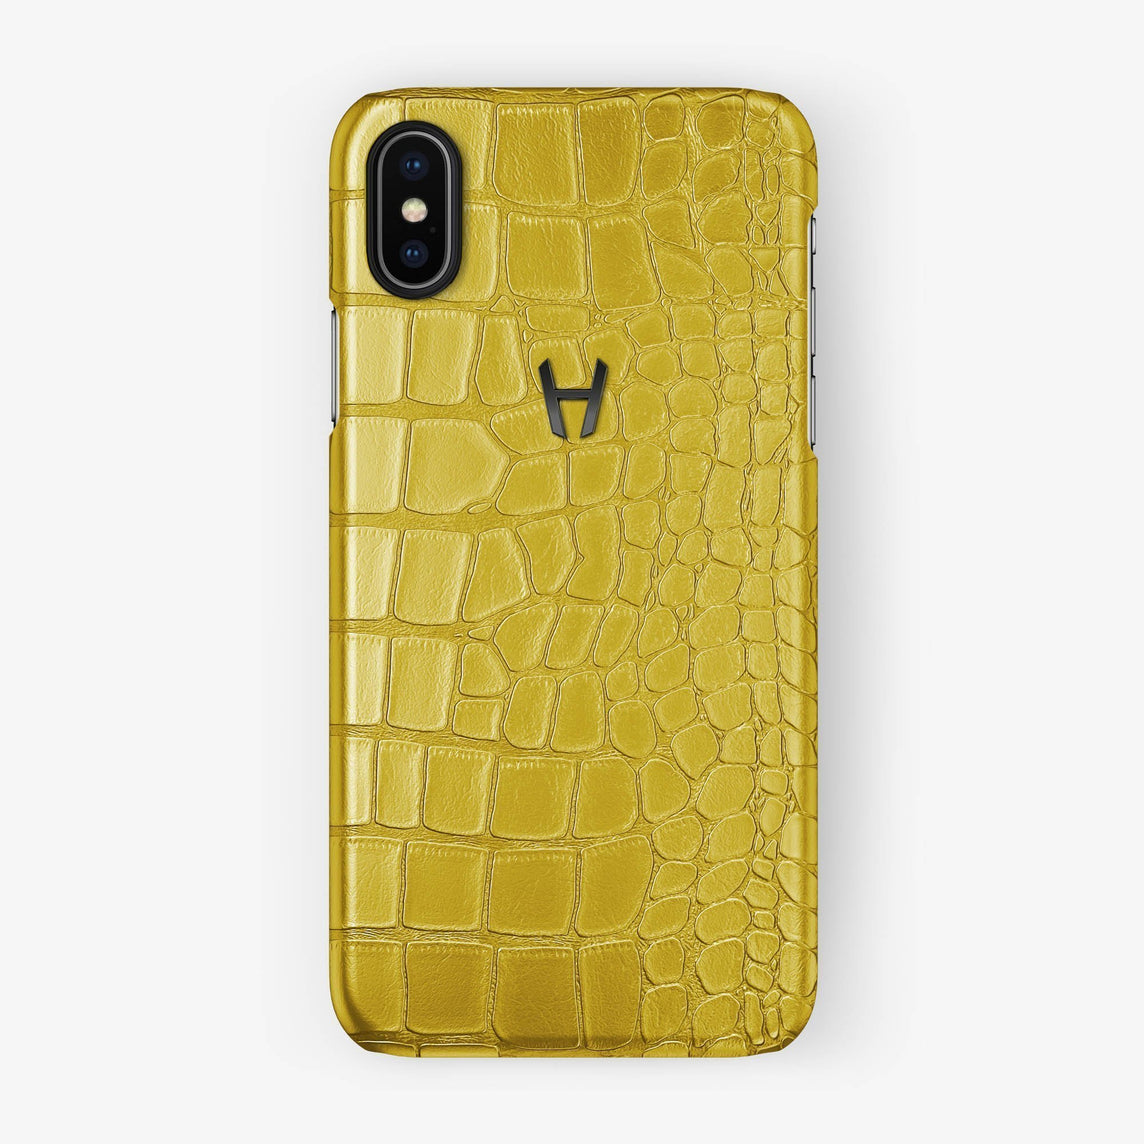 Alligator [iPhone Case] [model:iphone-xsmax-case] [colour:yellow] [finishing:black] - Hadoro